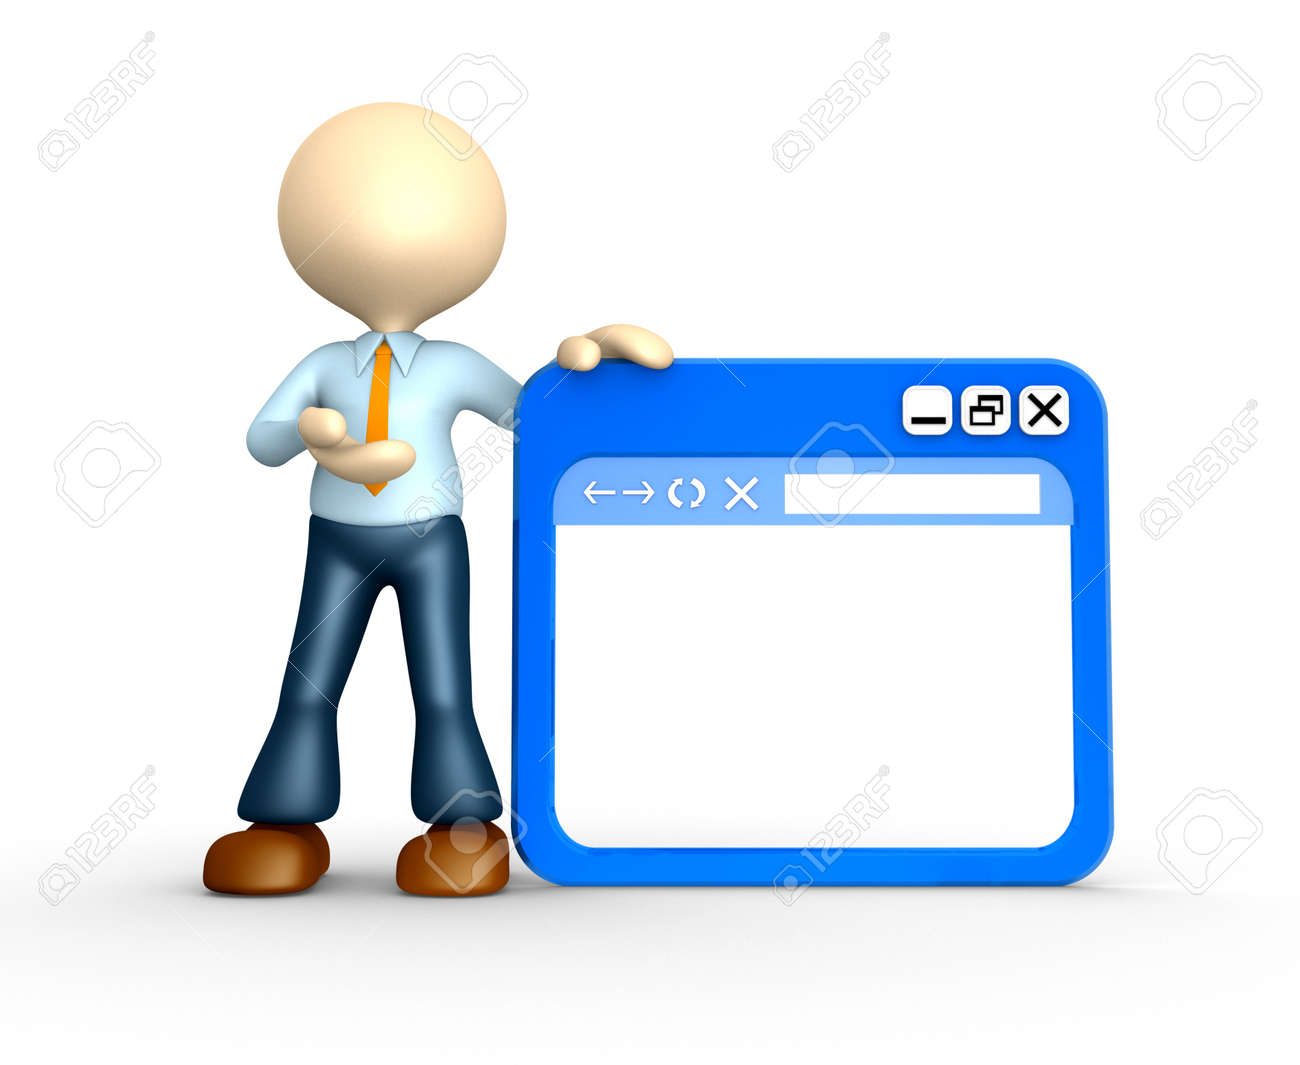 3d people - man, person with browser window Stock Photo - 25208916